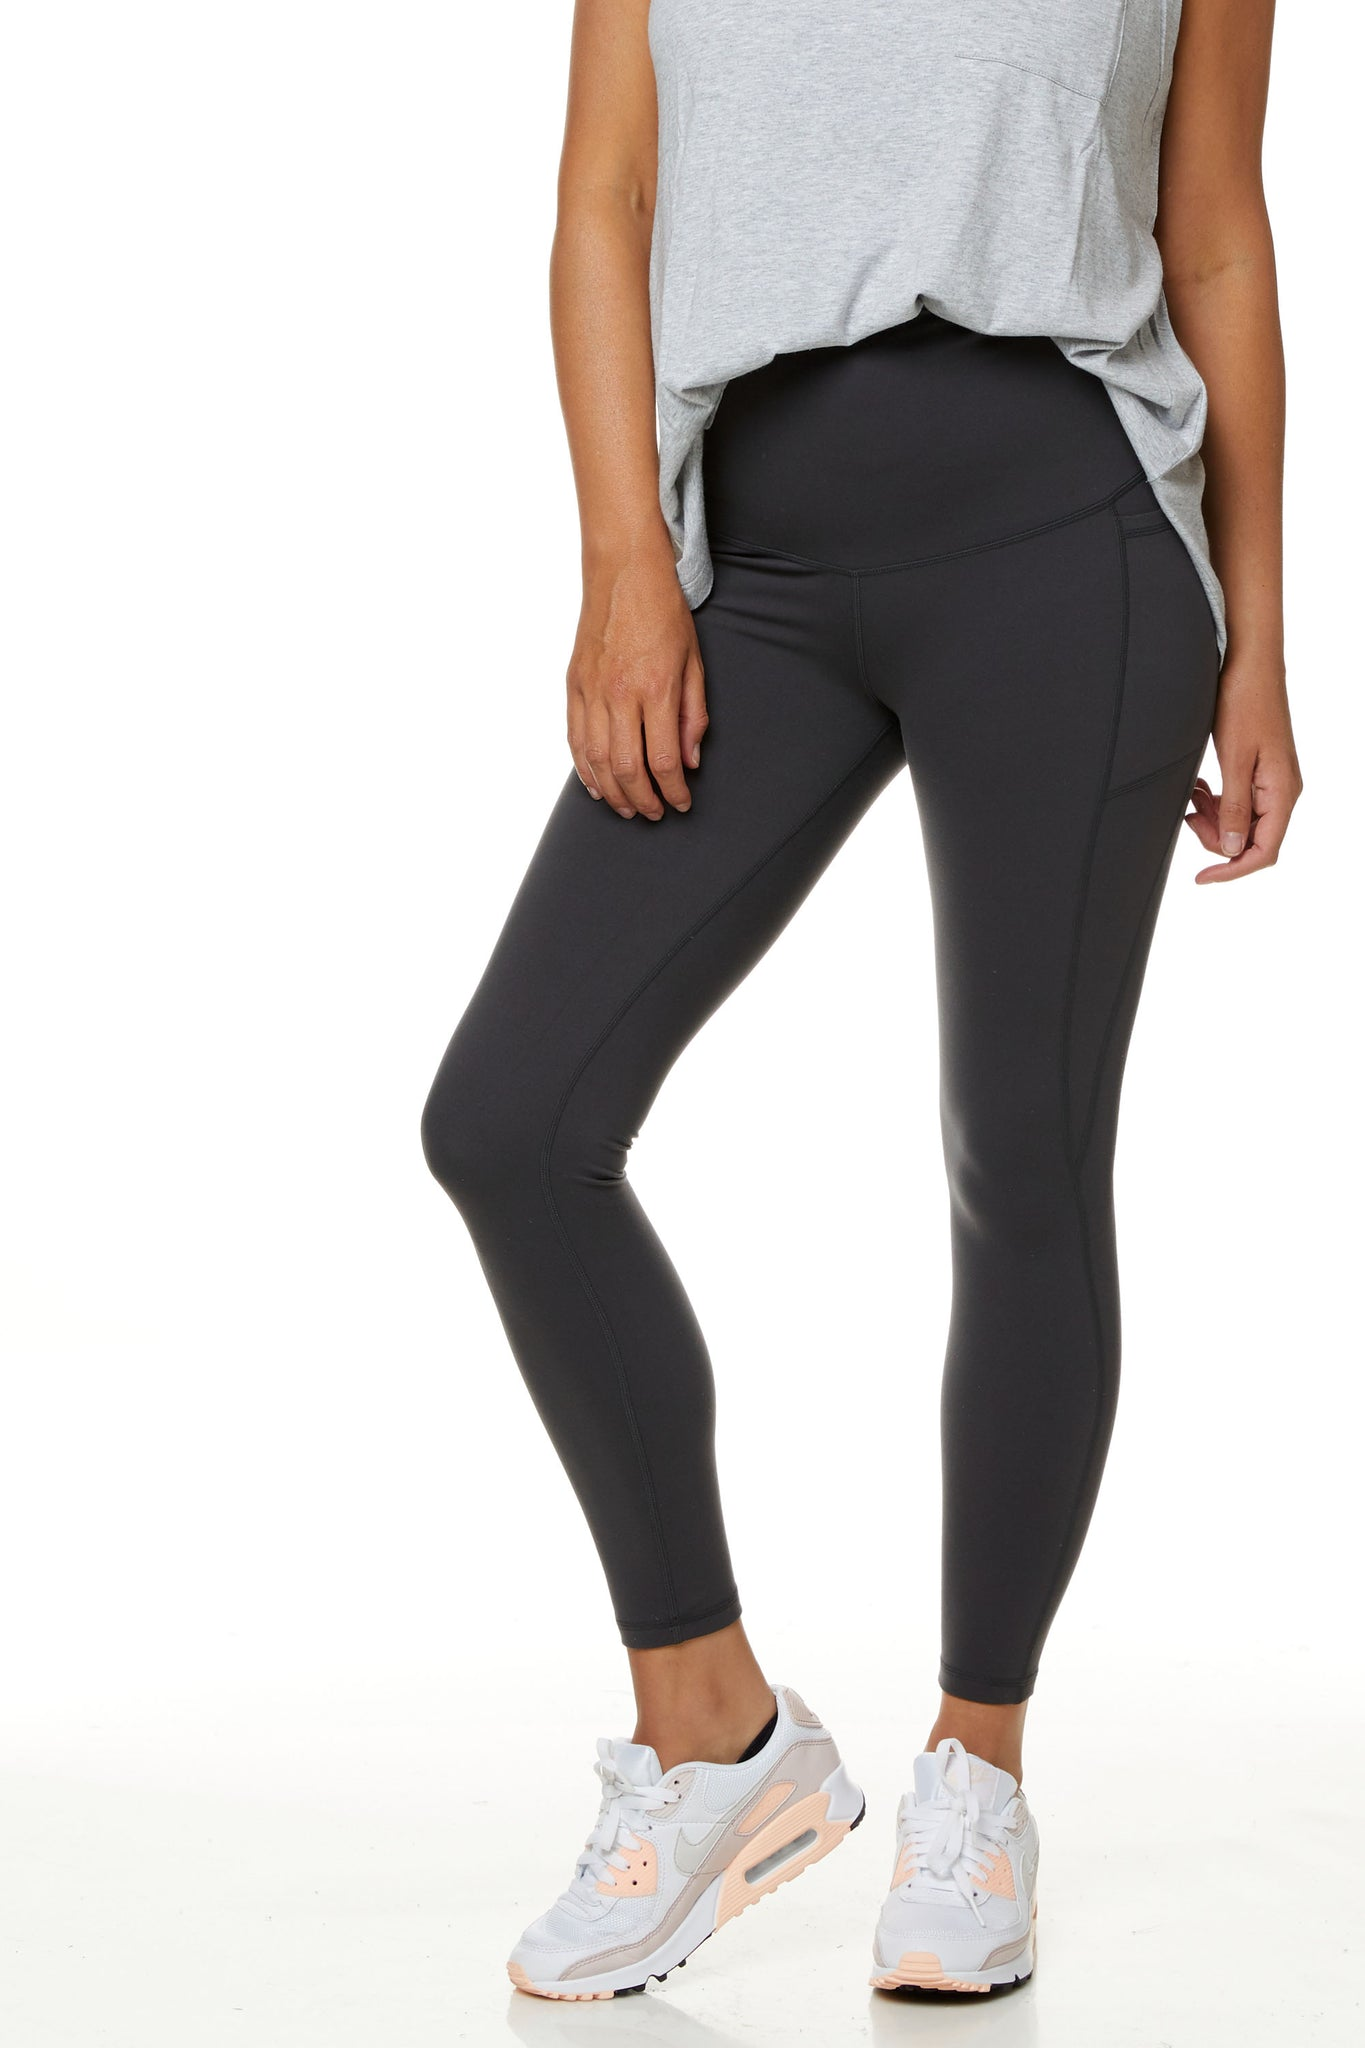 Maternity Leggings Australia 6